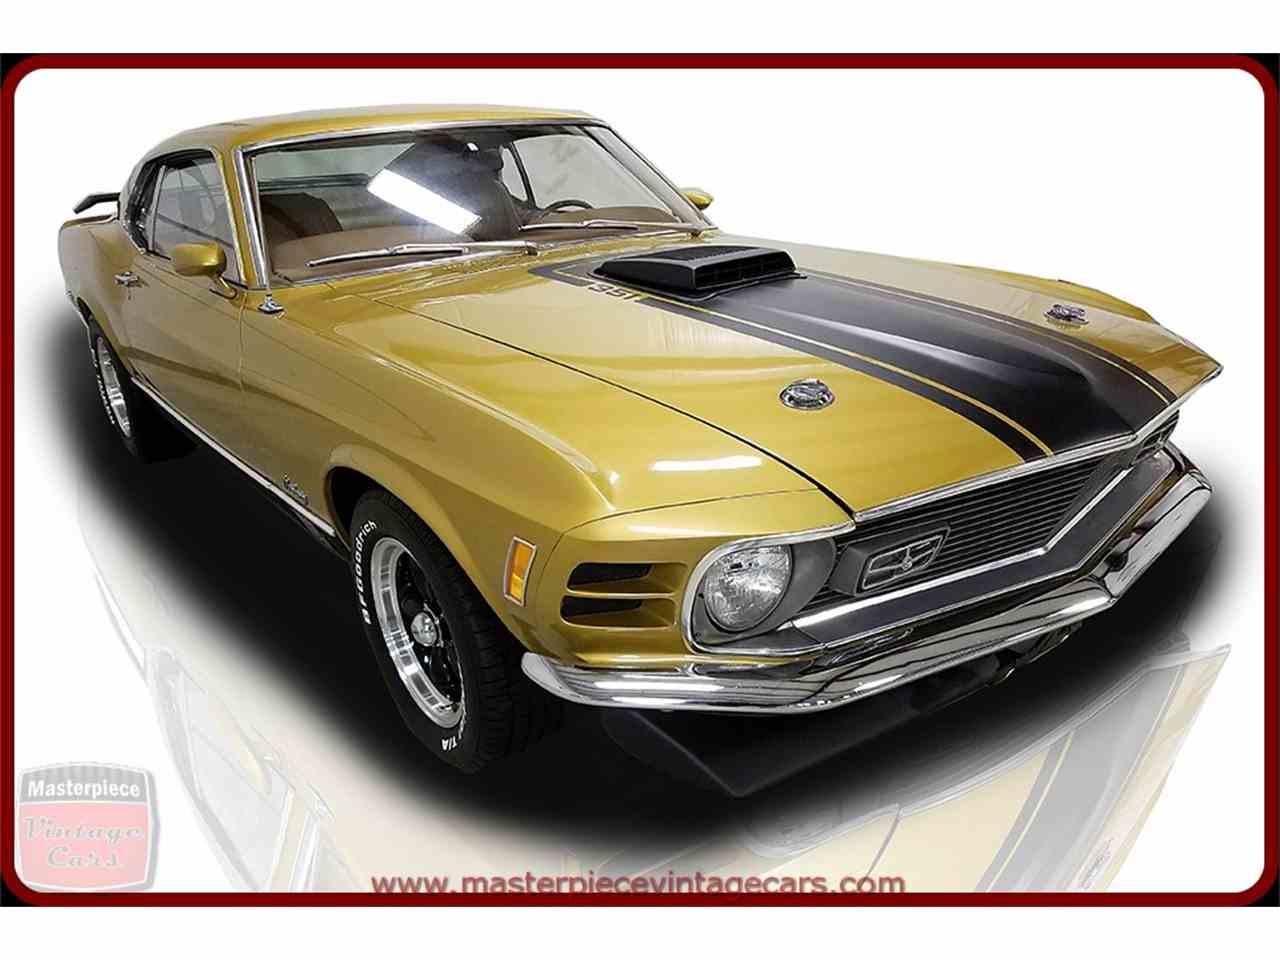 1970 Ford Mustang Mach 1 for Sale - CC-1047733